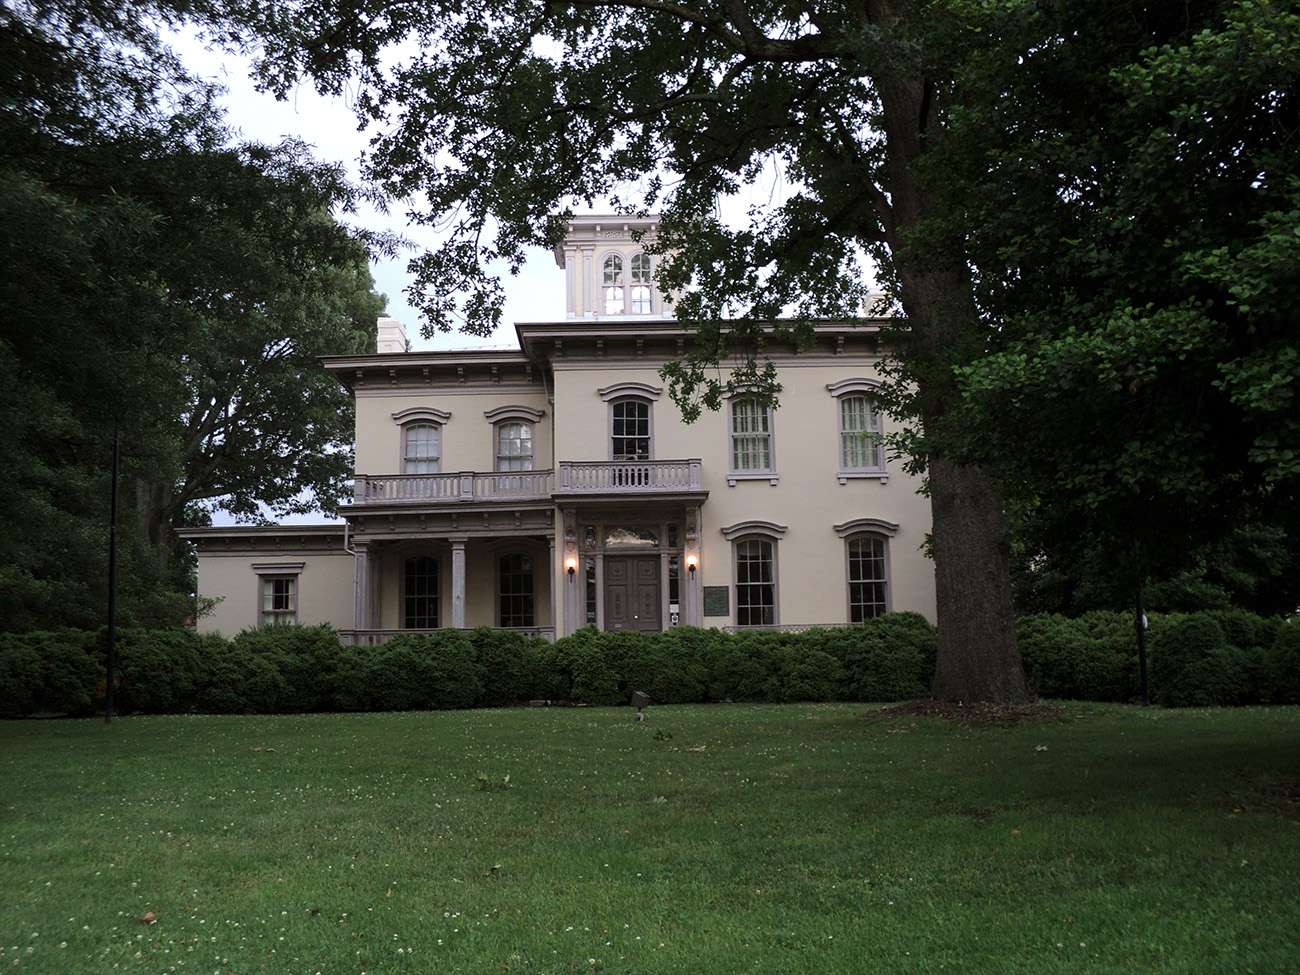 William_T_Sutherlin_Mansion_Danville_Virginia.JPG